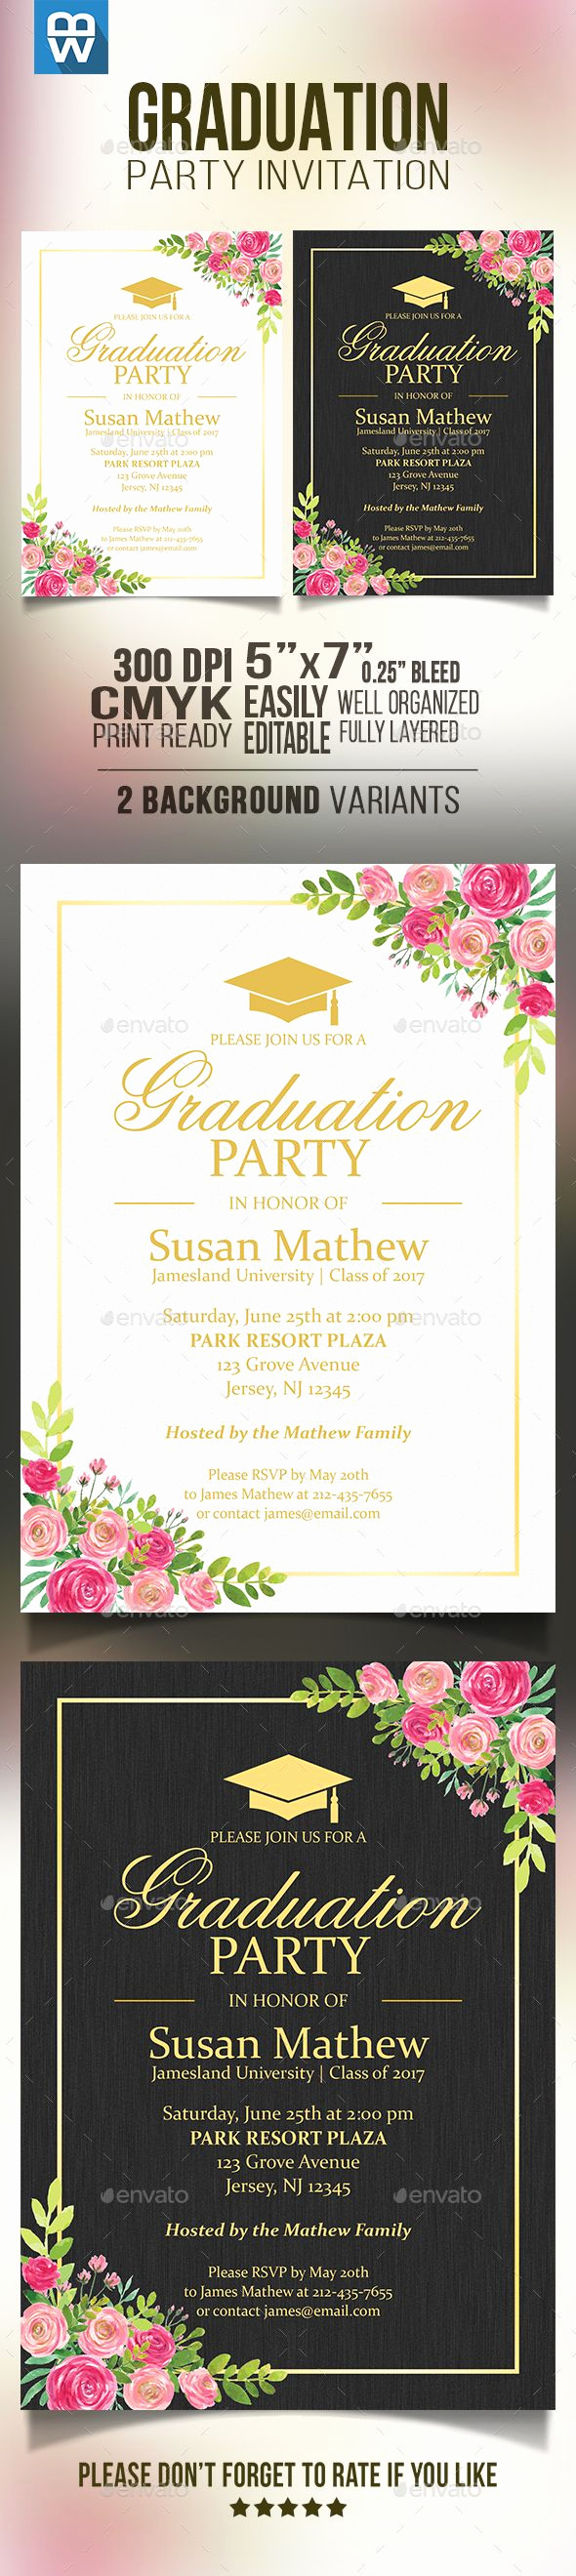 Graduation Invitation Cards Free Best Of 25 Best Ideas About Graduation Invitation Templates On